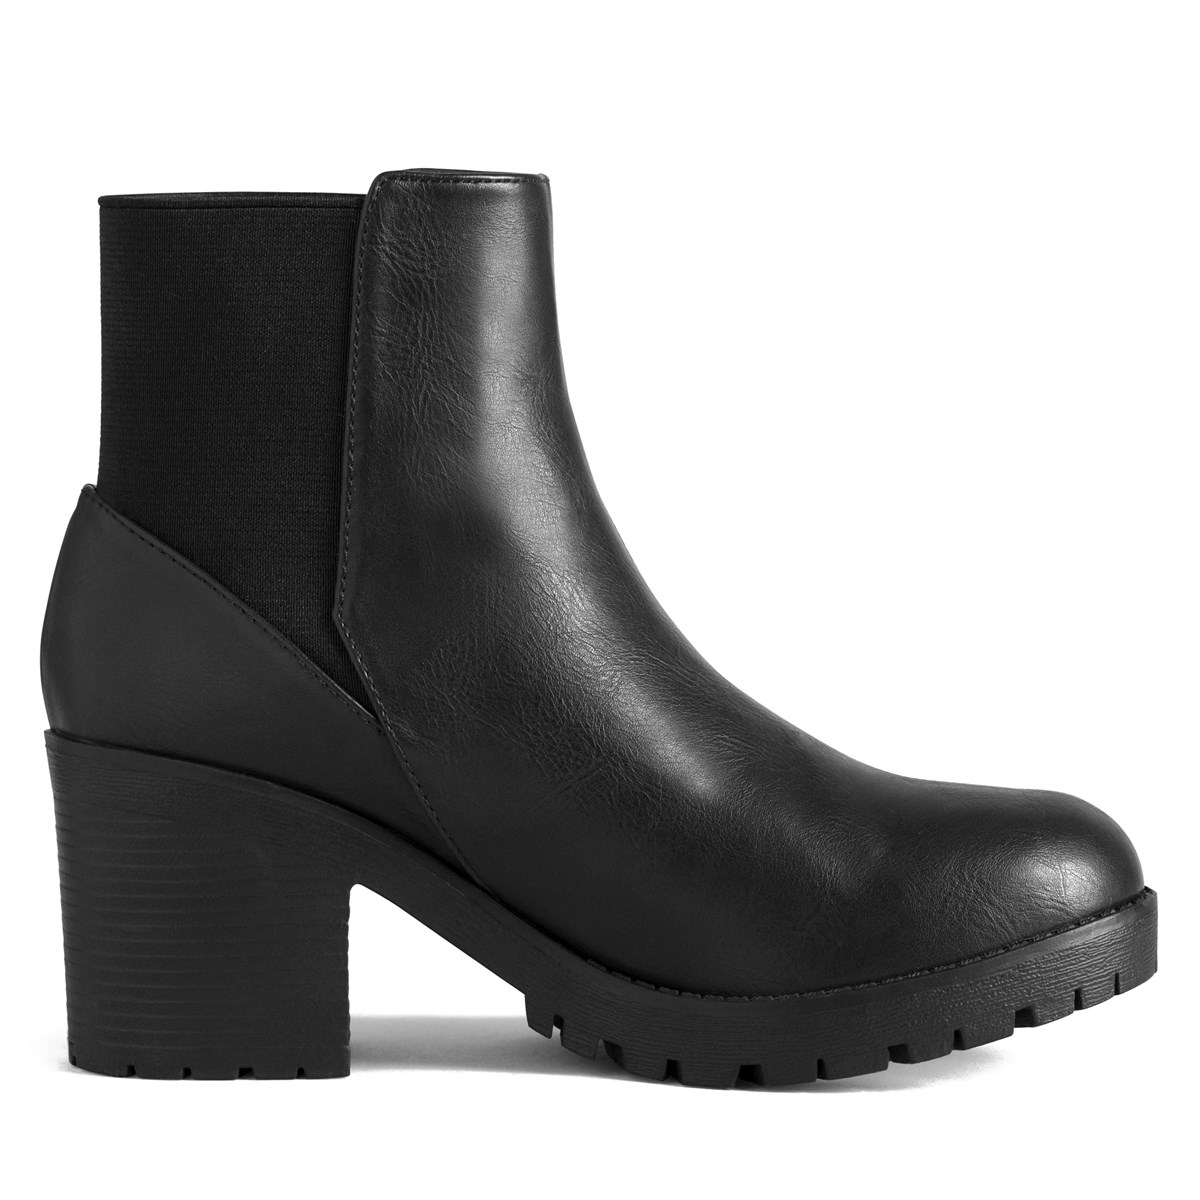 Women's Montroyal Ankle Boots in Black